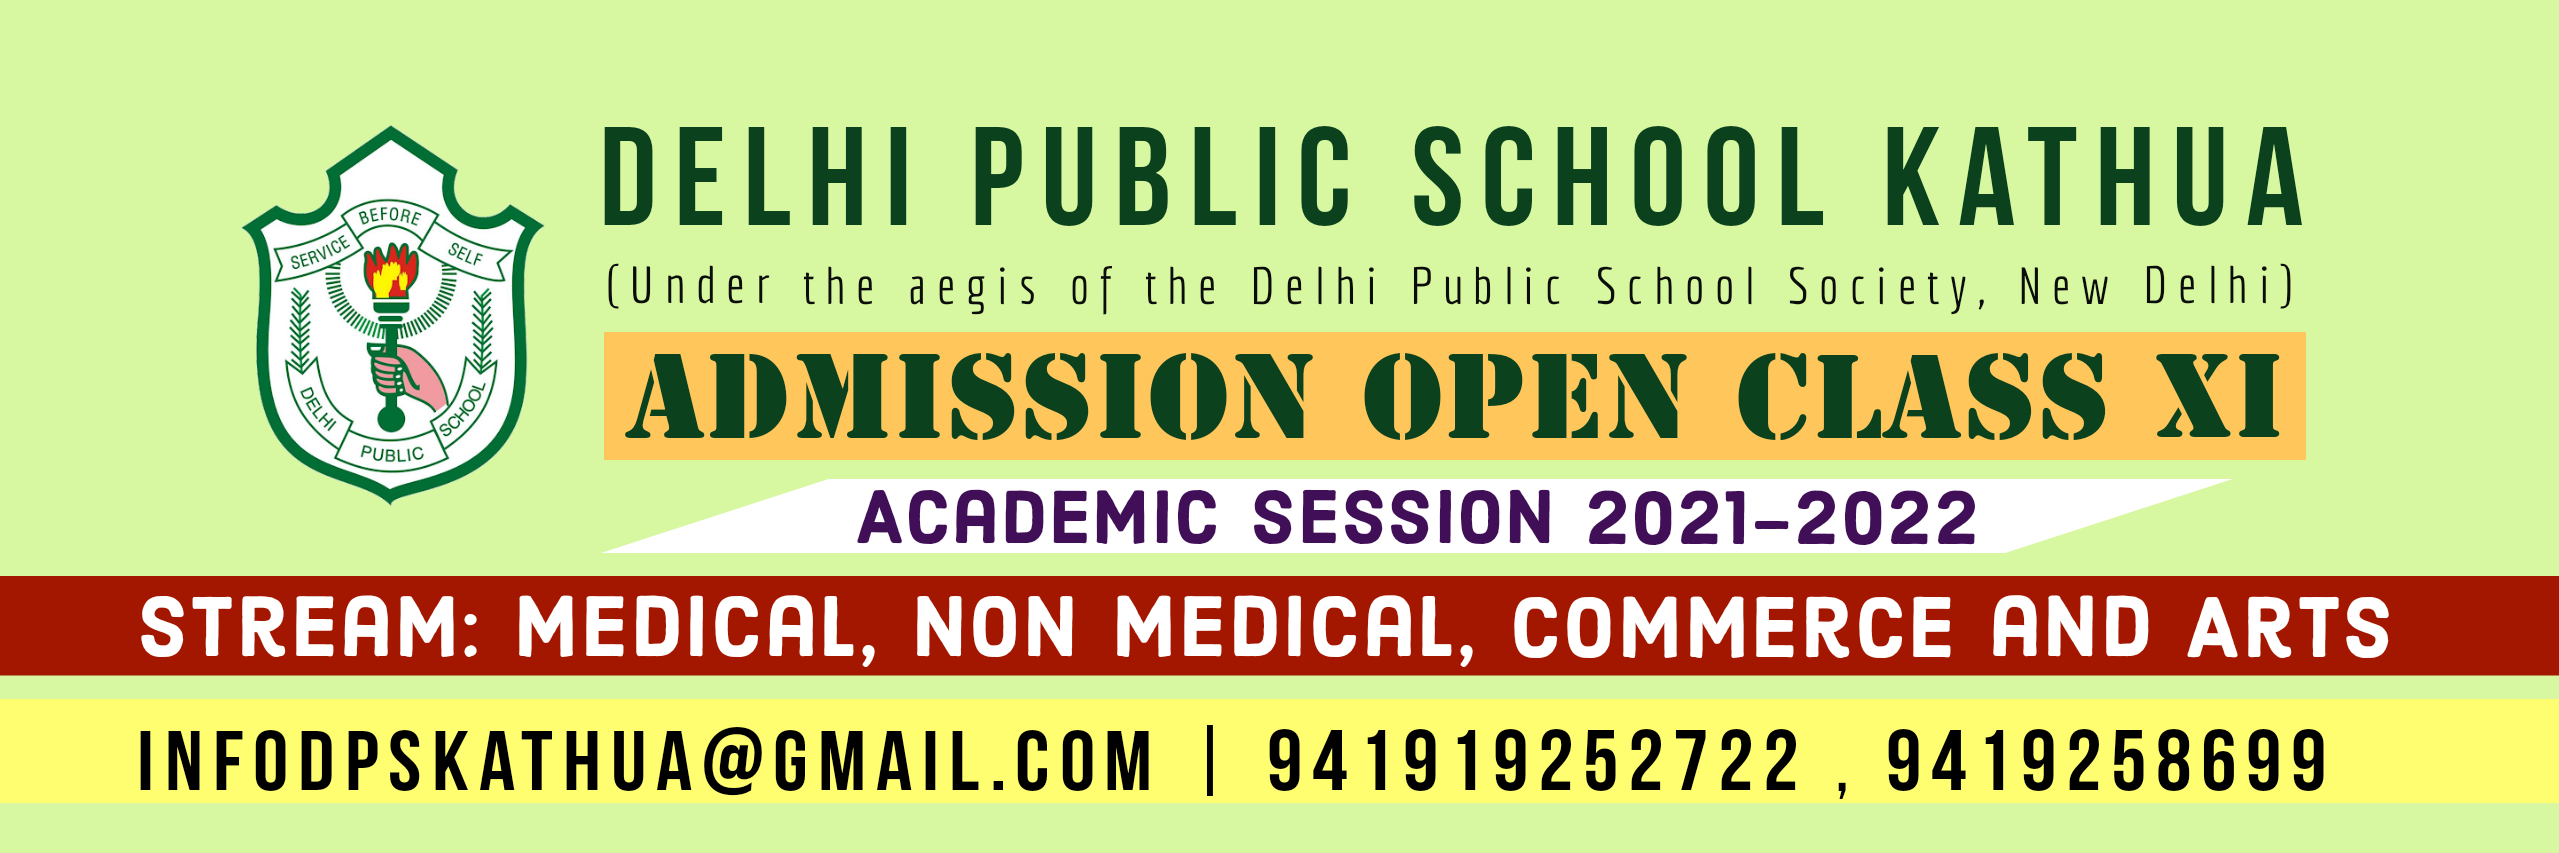 CLass XI admission open